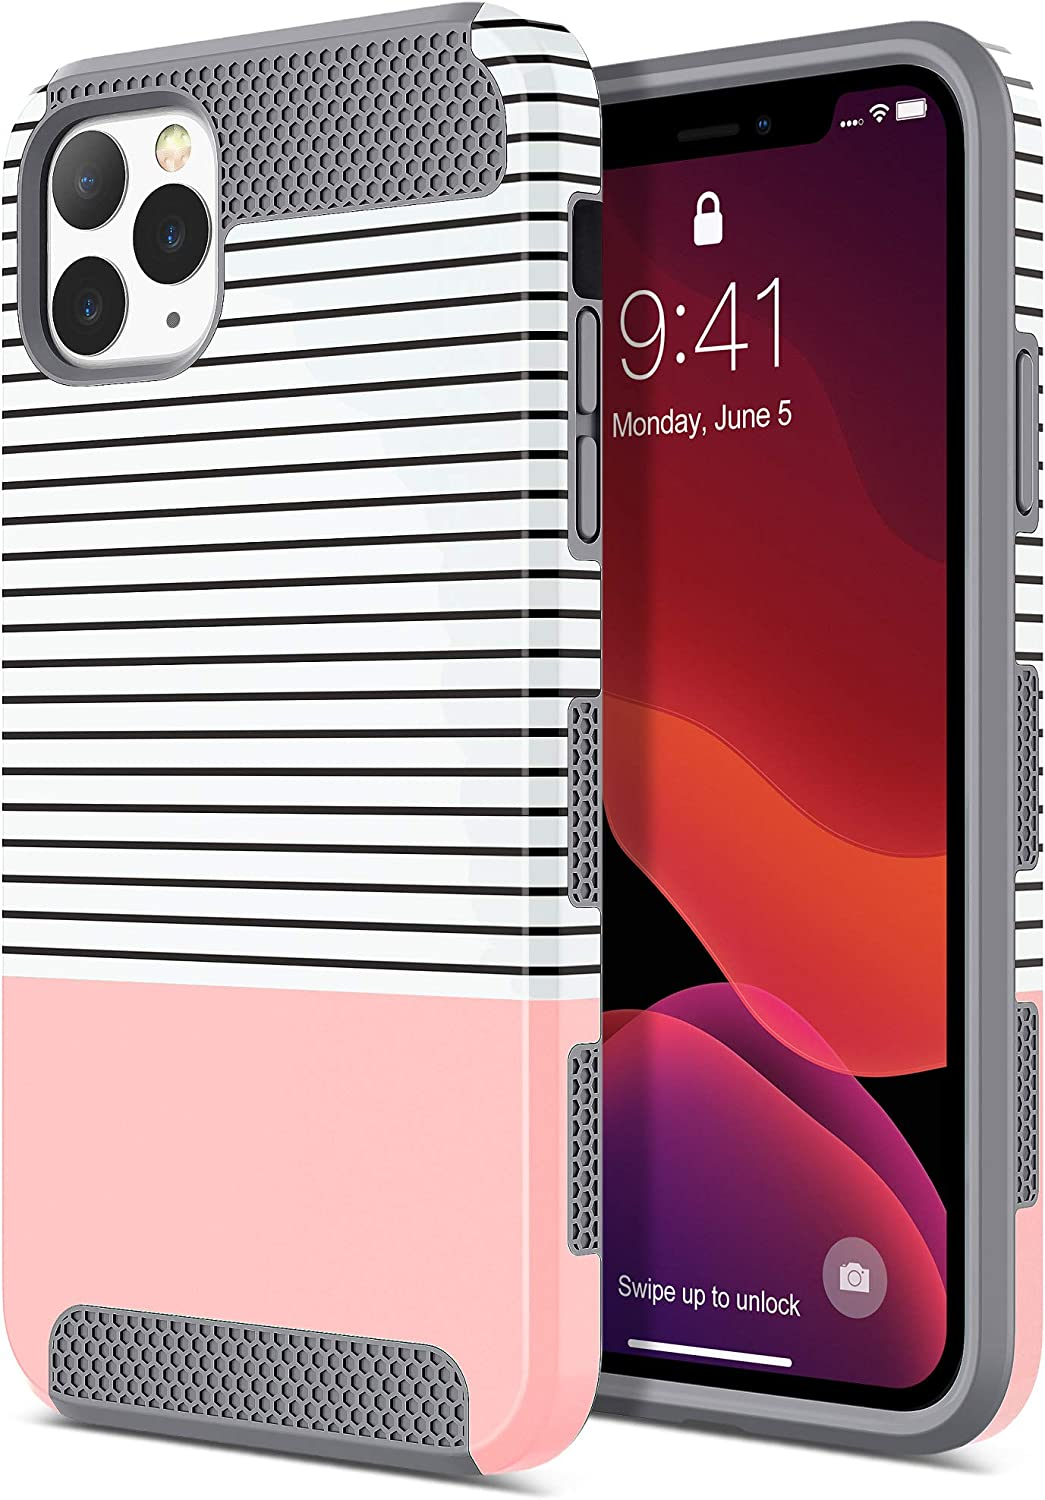 ULAK iPhone 11 Pro Max Case, Stylish Slim Fit Hybrid Dual Layer Protective Flexible ShockProof TPU Bumper Hard PC Back Cover for Apple iPhone 11 Pro Max 6.5 Inch (2019), Rose Gold Stripes